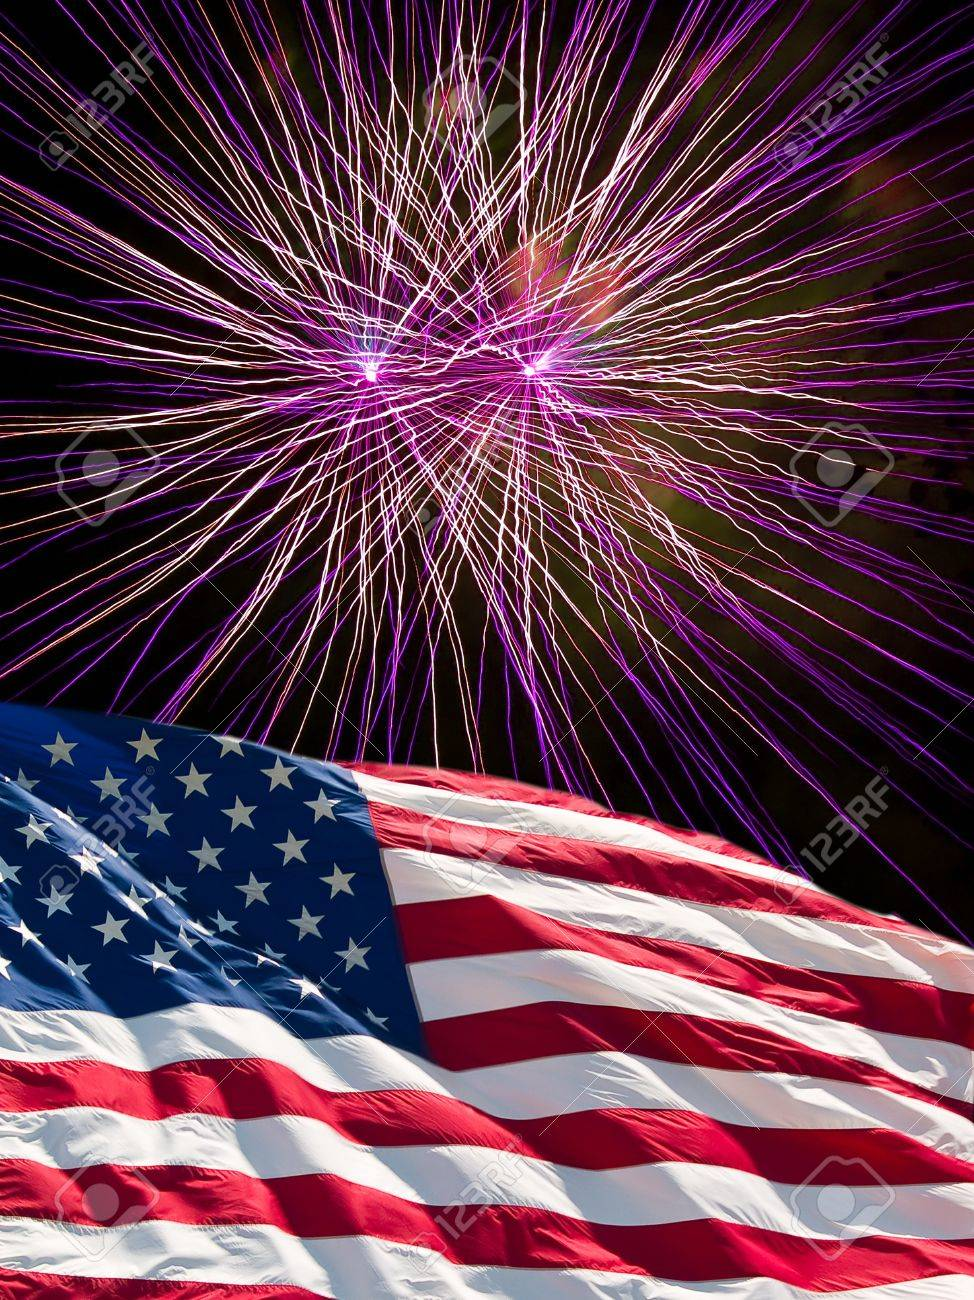 The American Flag And Purple Fireworks From Independence Day Stock